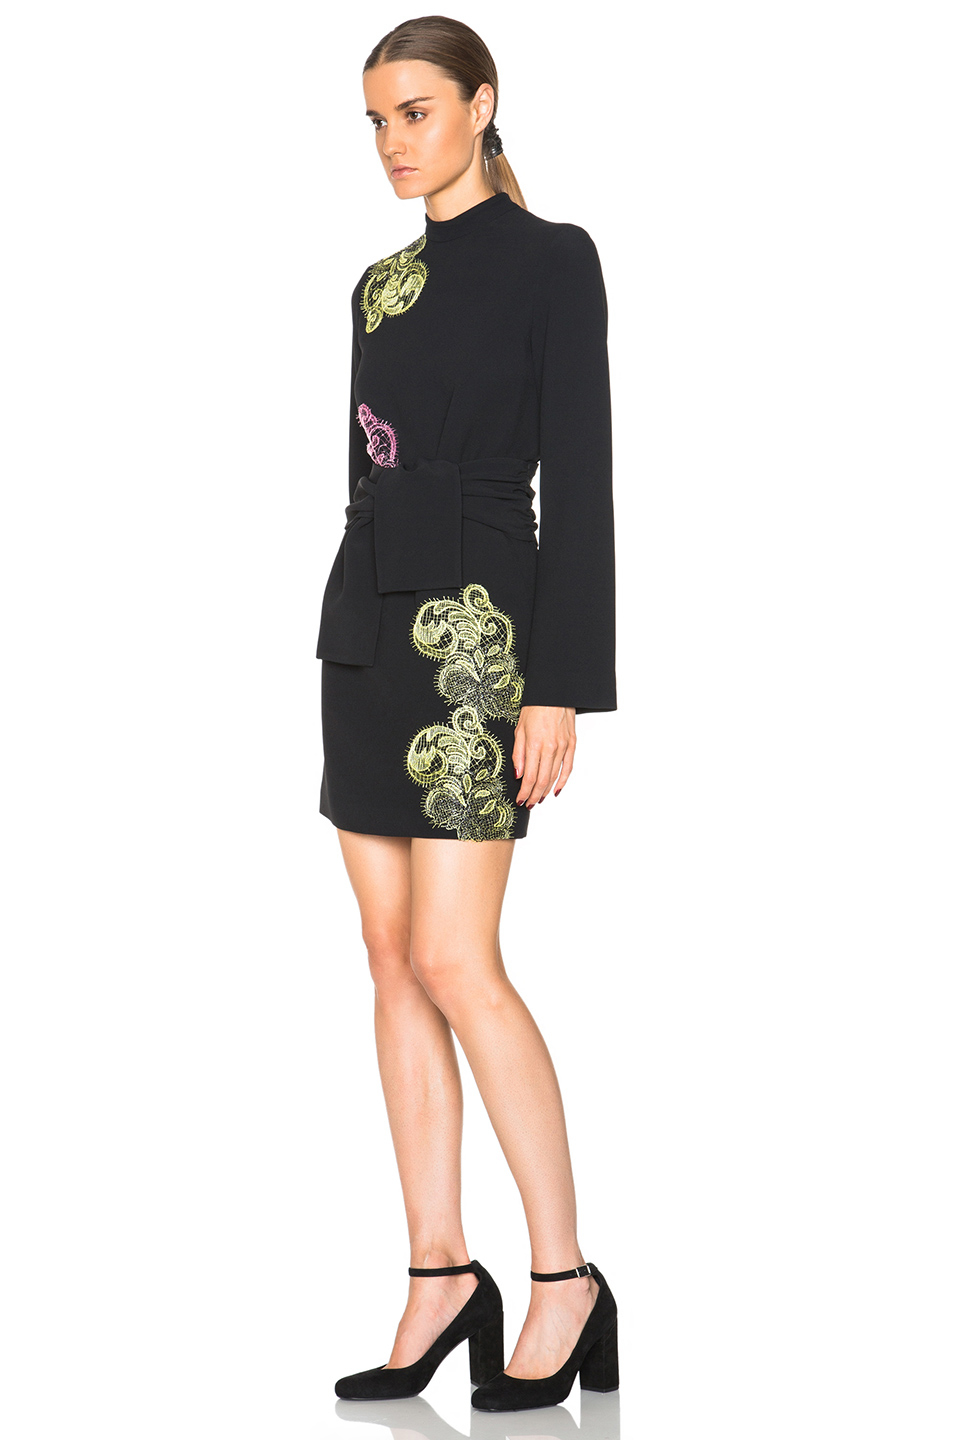 Real Cheap Price dress in double-layer cady with embroidery detail Msgm High Quality Online Buy Cheap Professional Pay With Paypal For Sale For Cheap Price uQB2aDt